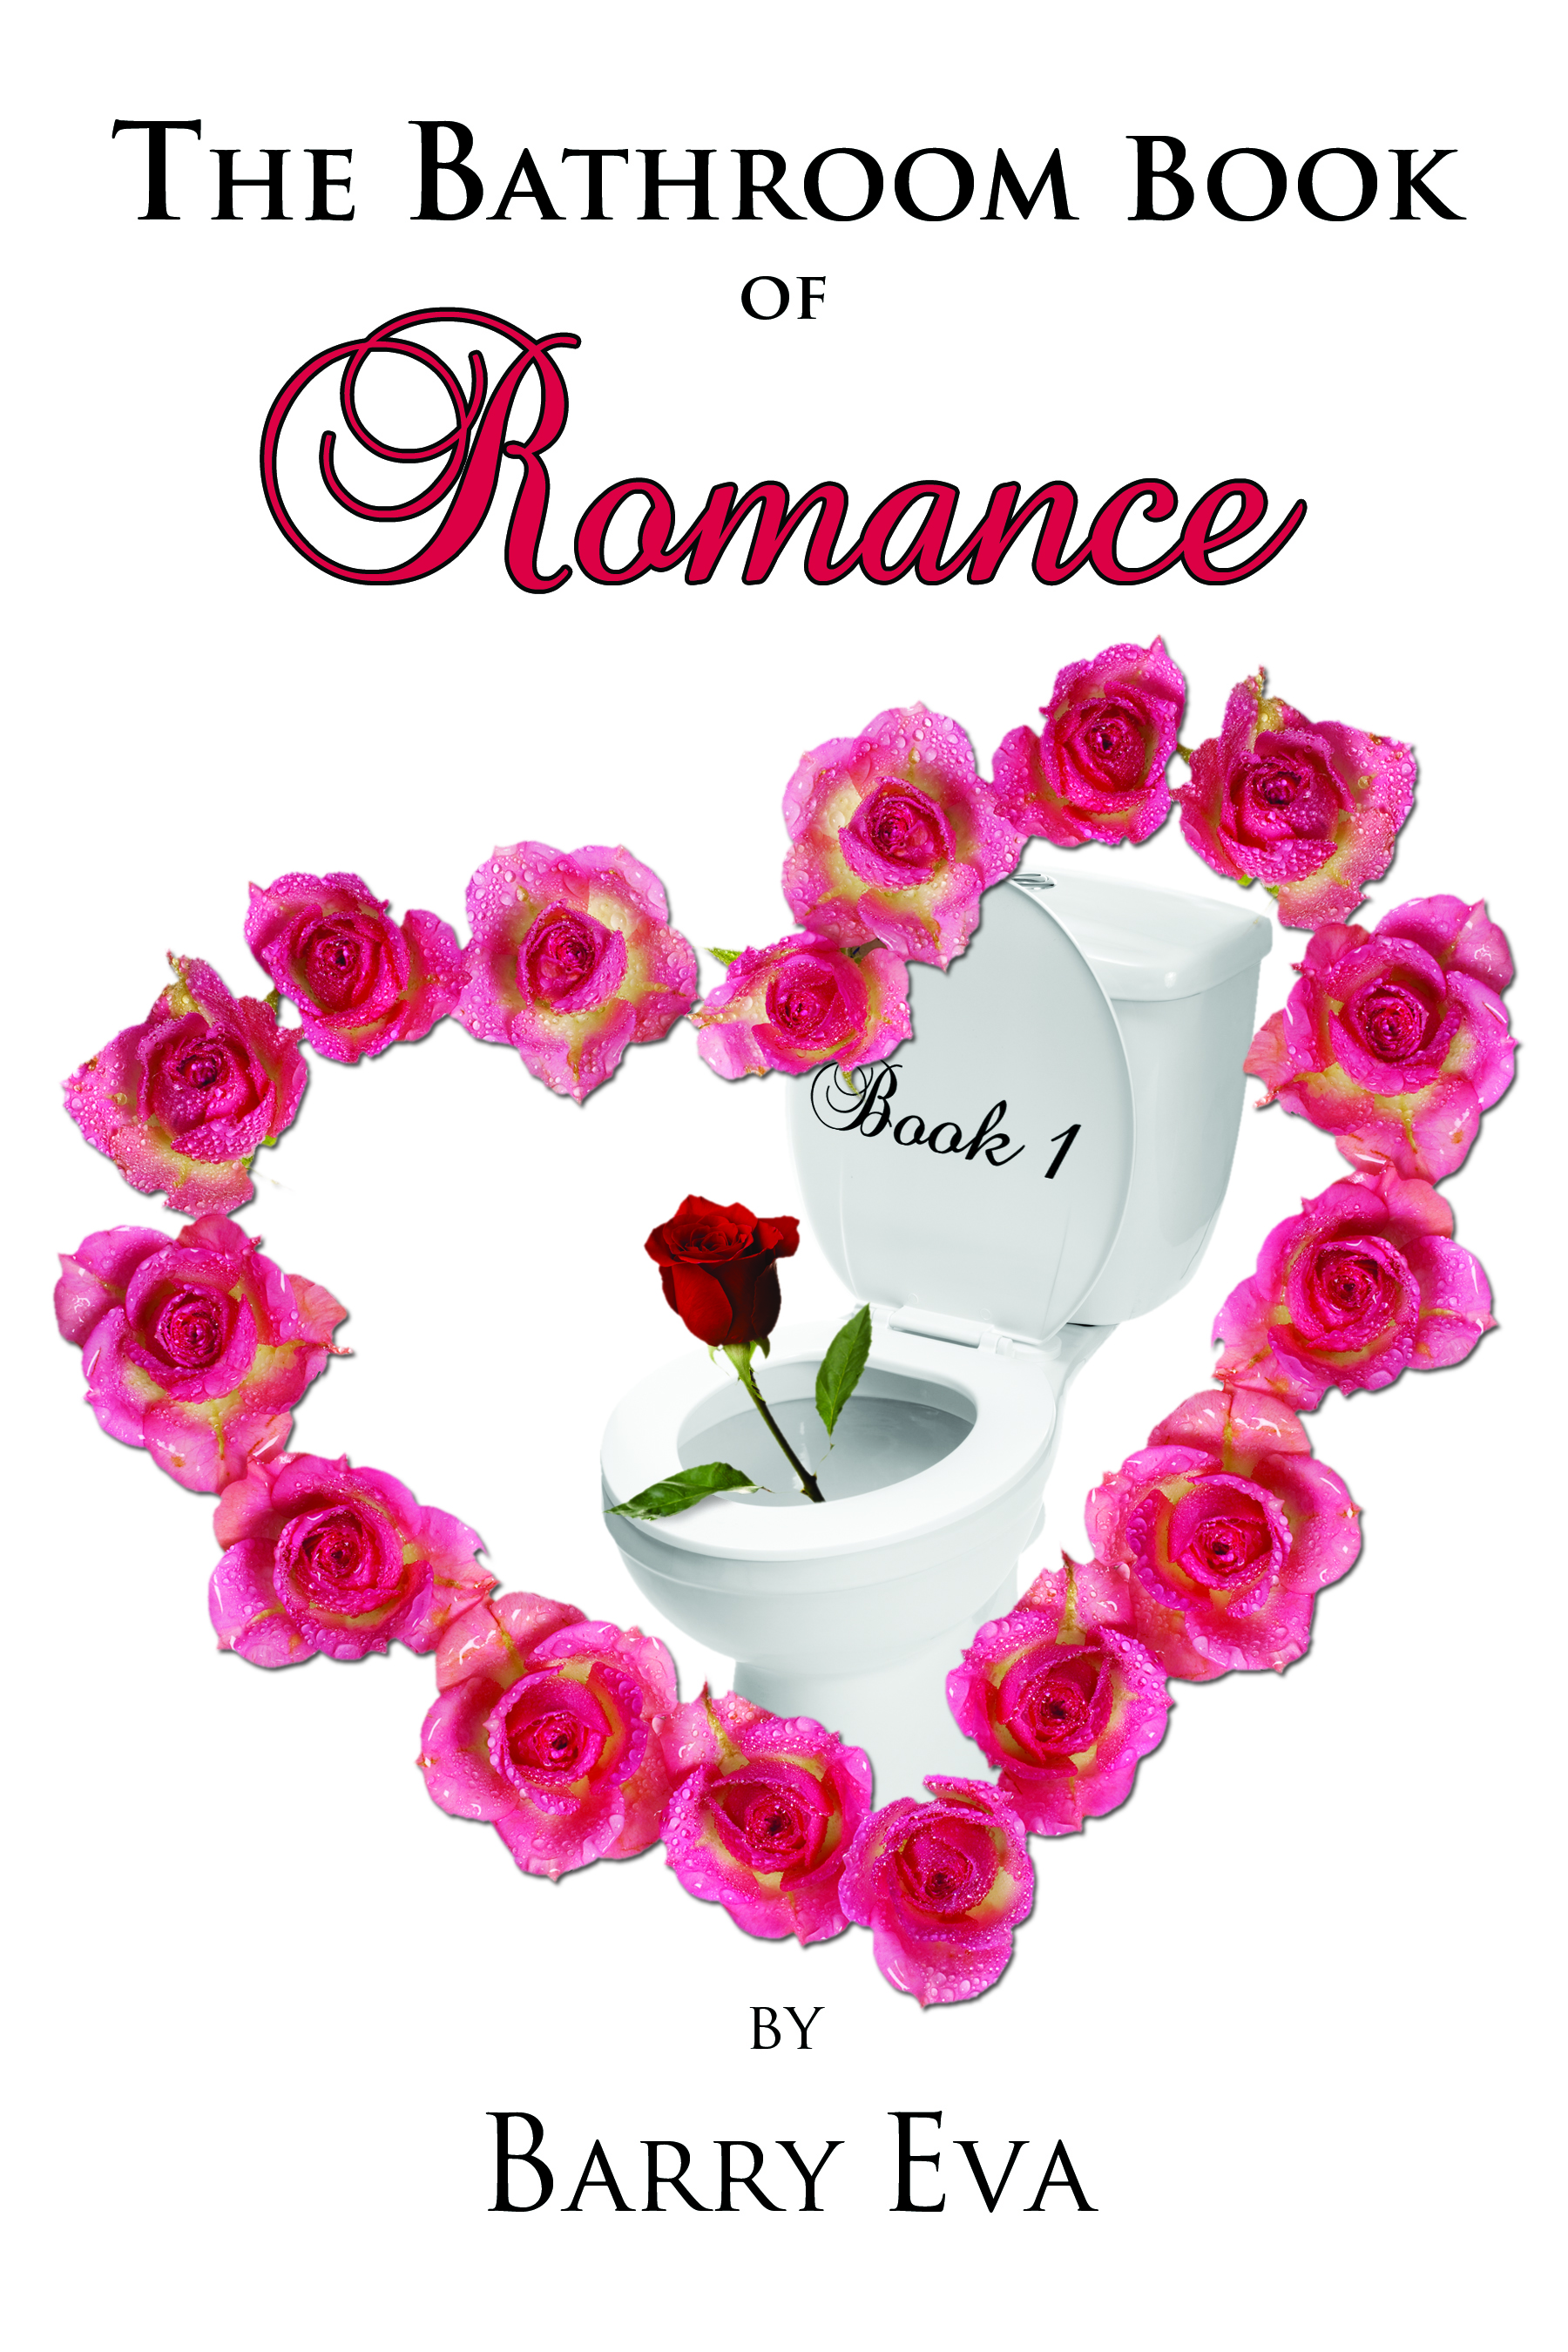 New Romantic Short Stories For Review The Bathroom Book